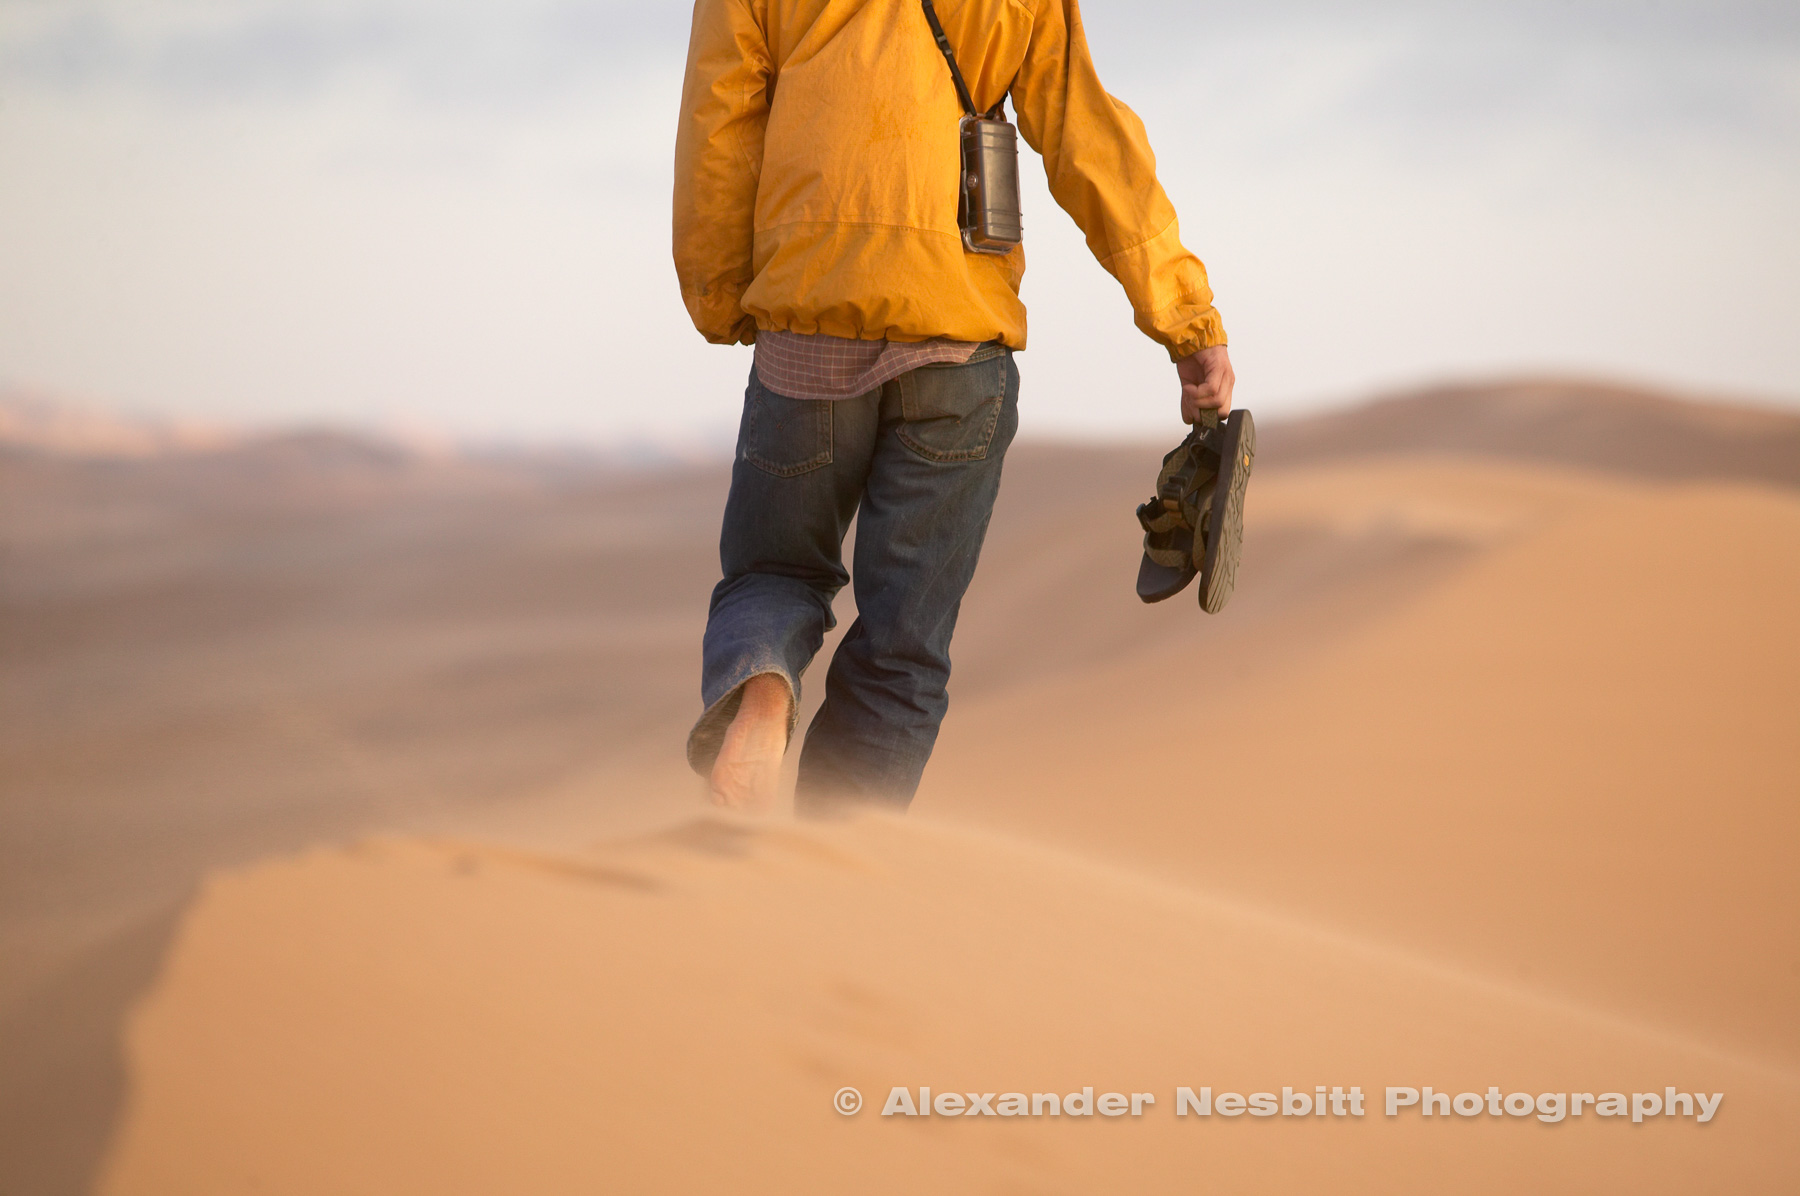 Namibia, Swakopmund - Traveler explores the dunes between Swakopmund and Walvis Bay